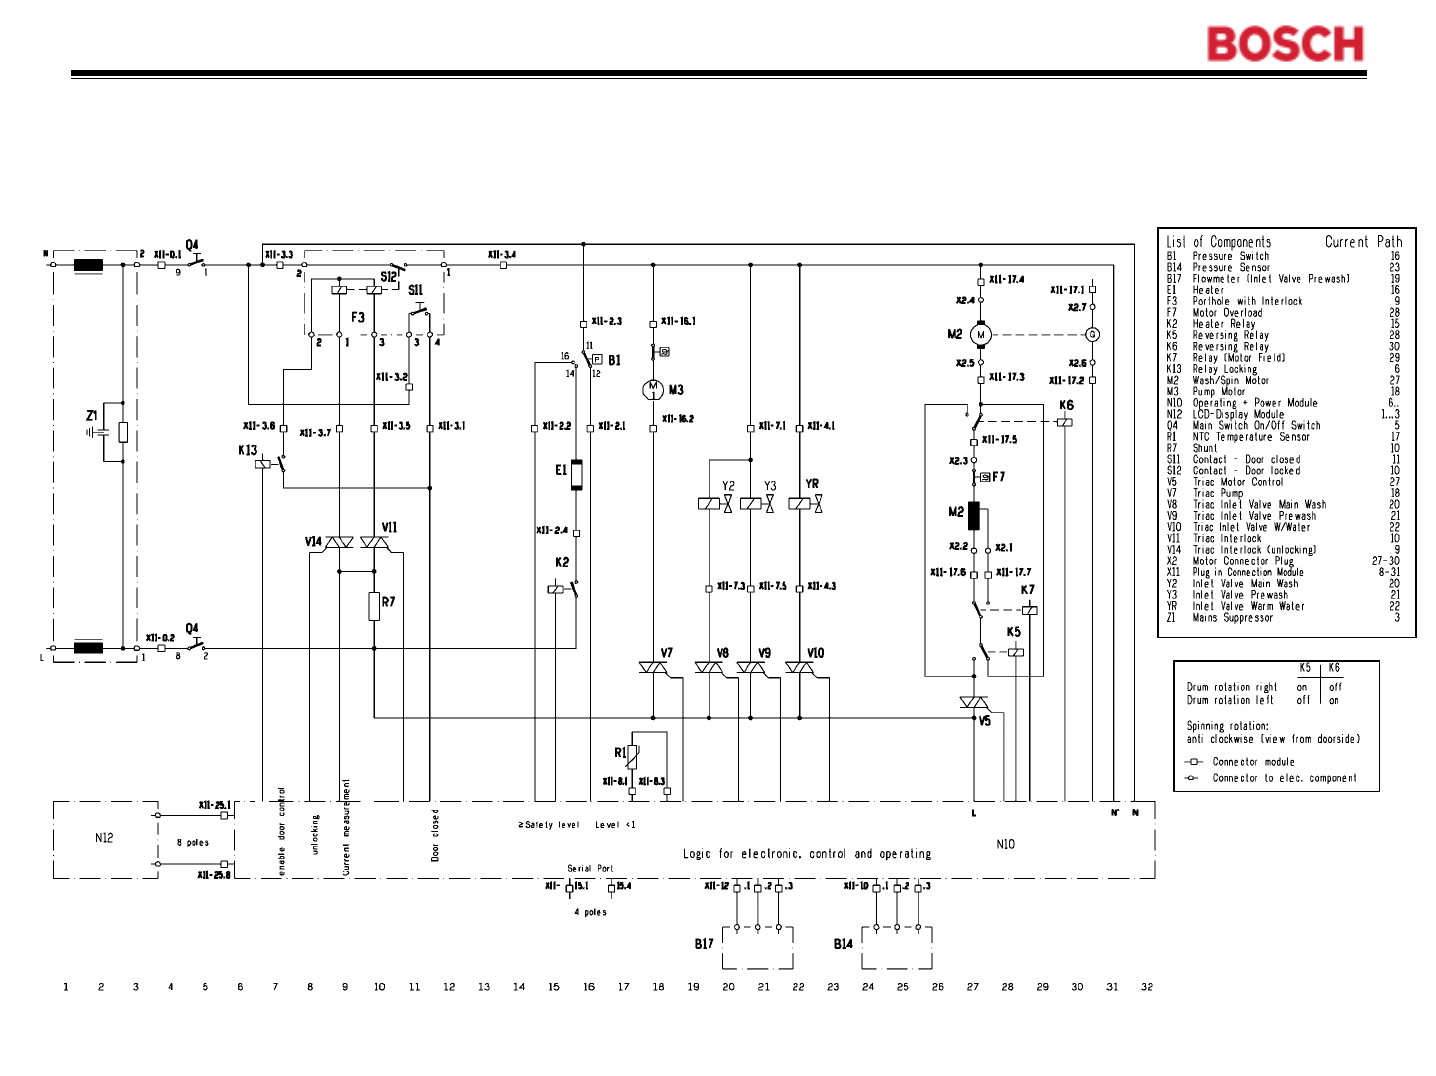 Bosch washer wiring diagram wiring diagrams schematics page 39 of bosch appliances washer wfr2460uc user guide on bomag wiring diagram for wfr 2460uc swarovskicordoba Gallery